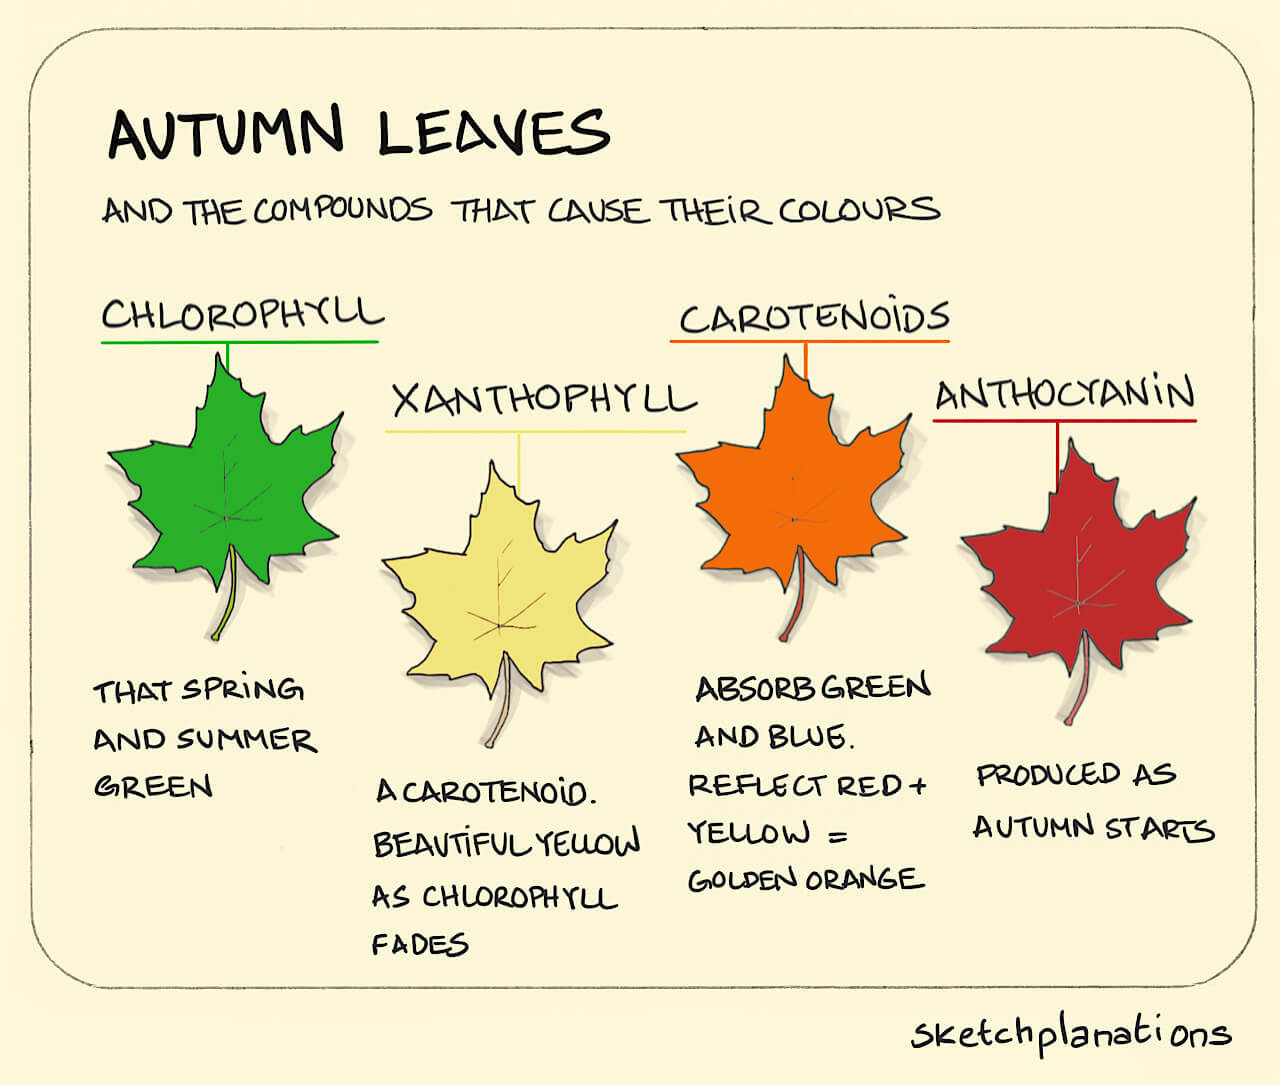 Autumn Leaves And The Compounds That Cause Their